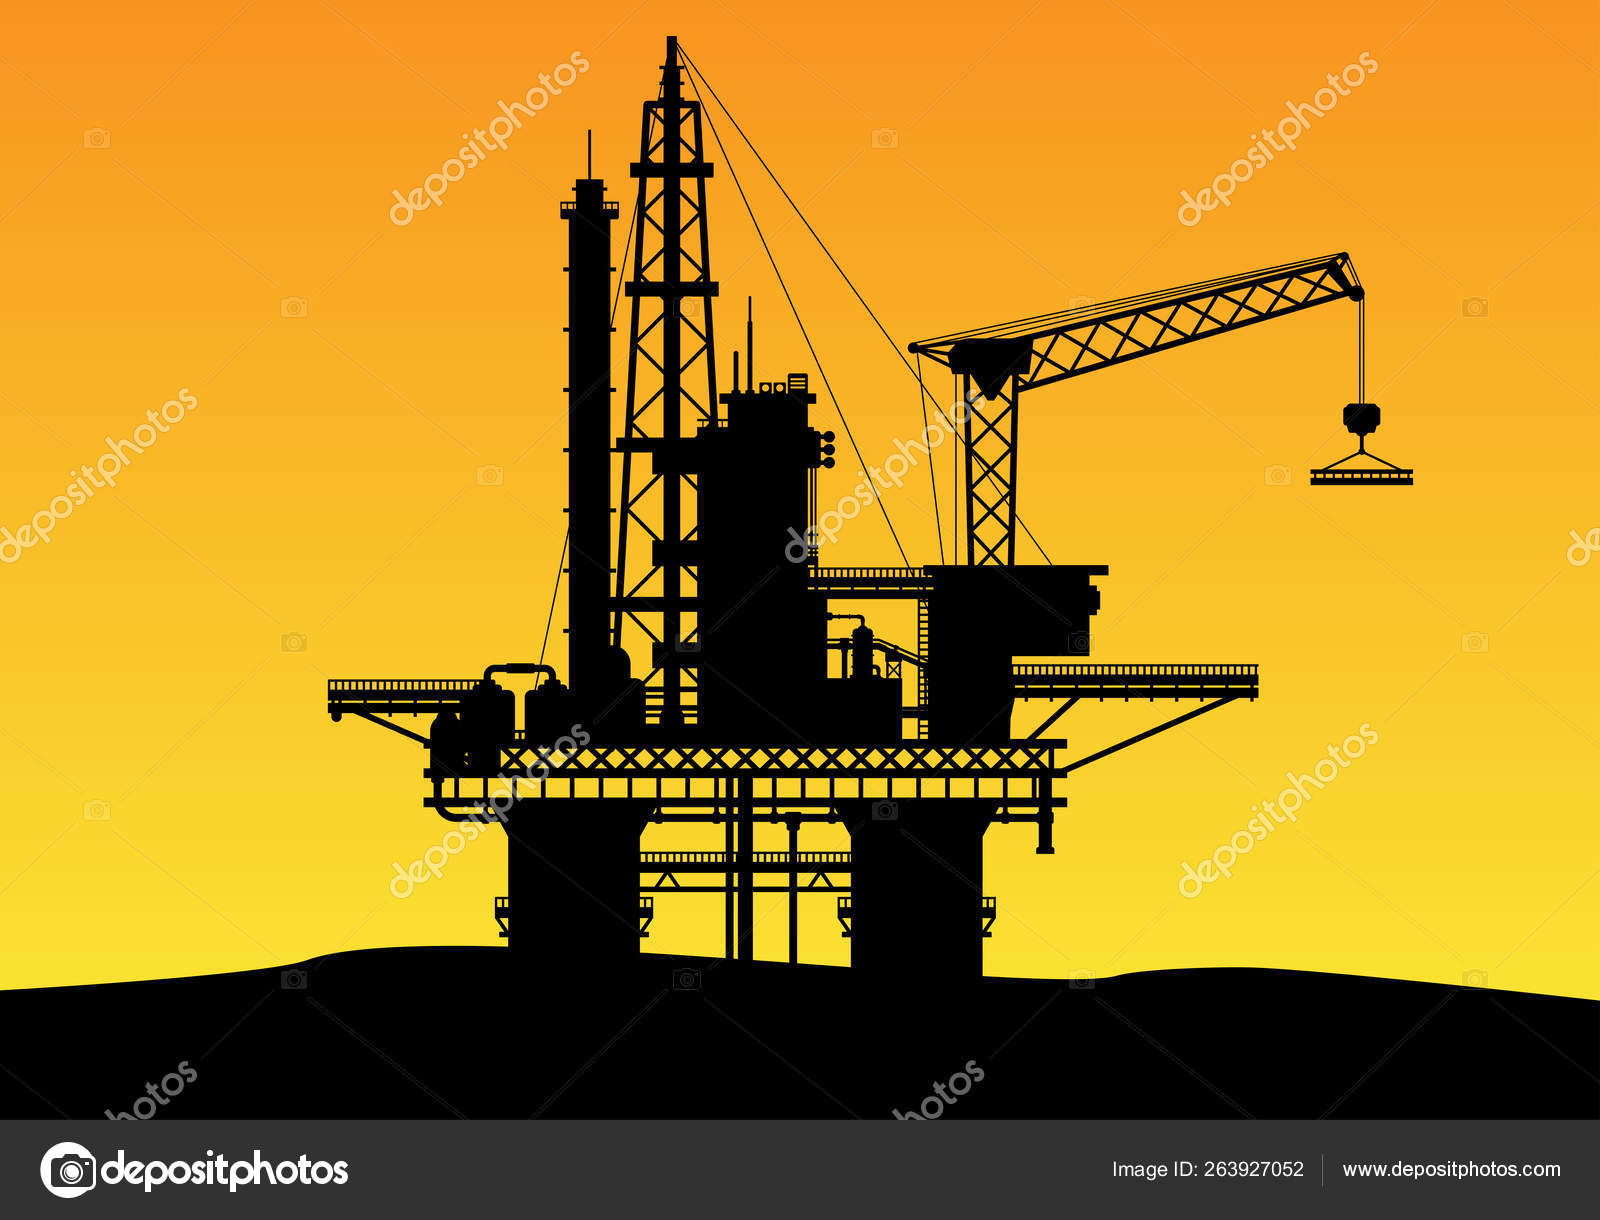 Illustrated Silhouette Offshore Oil Drilling Construction High